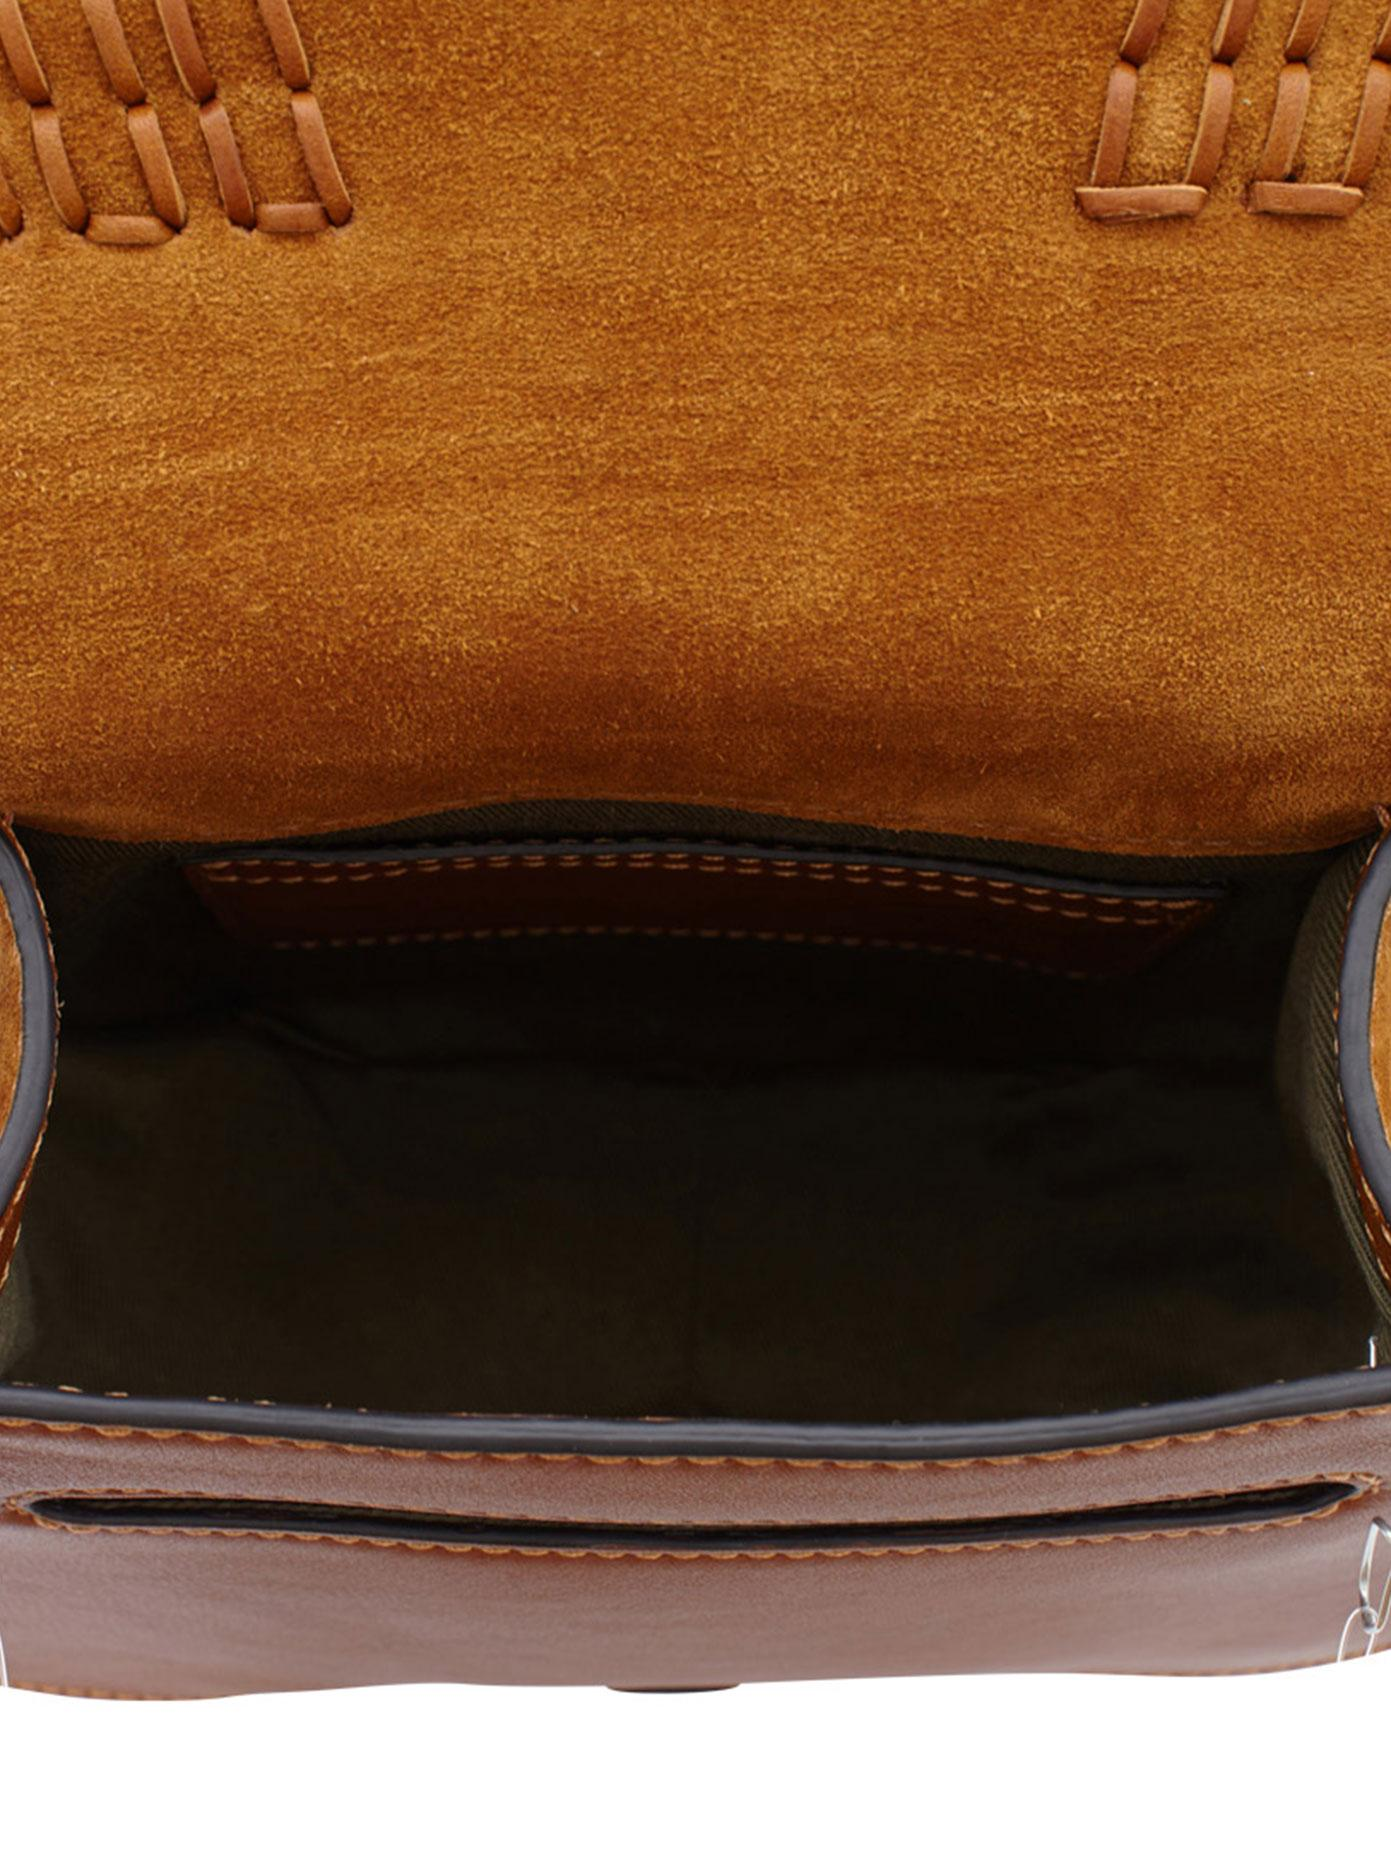 Chloé Suede Small Marcie Cross Body Bag in Brown